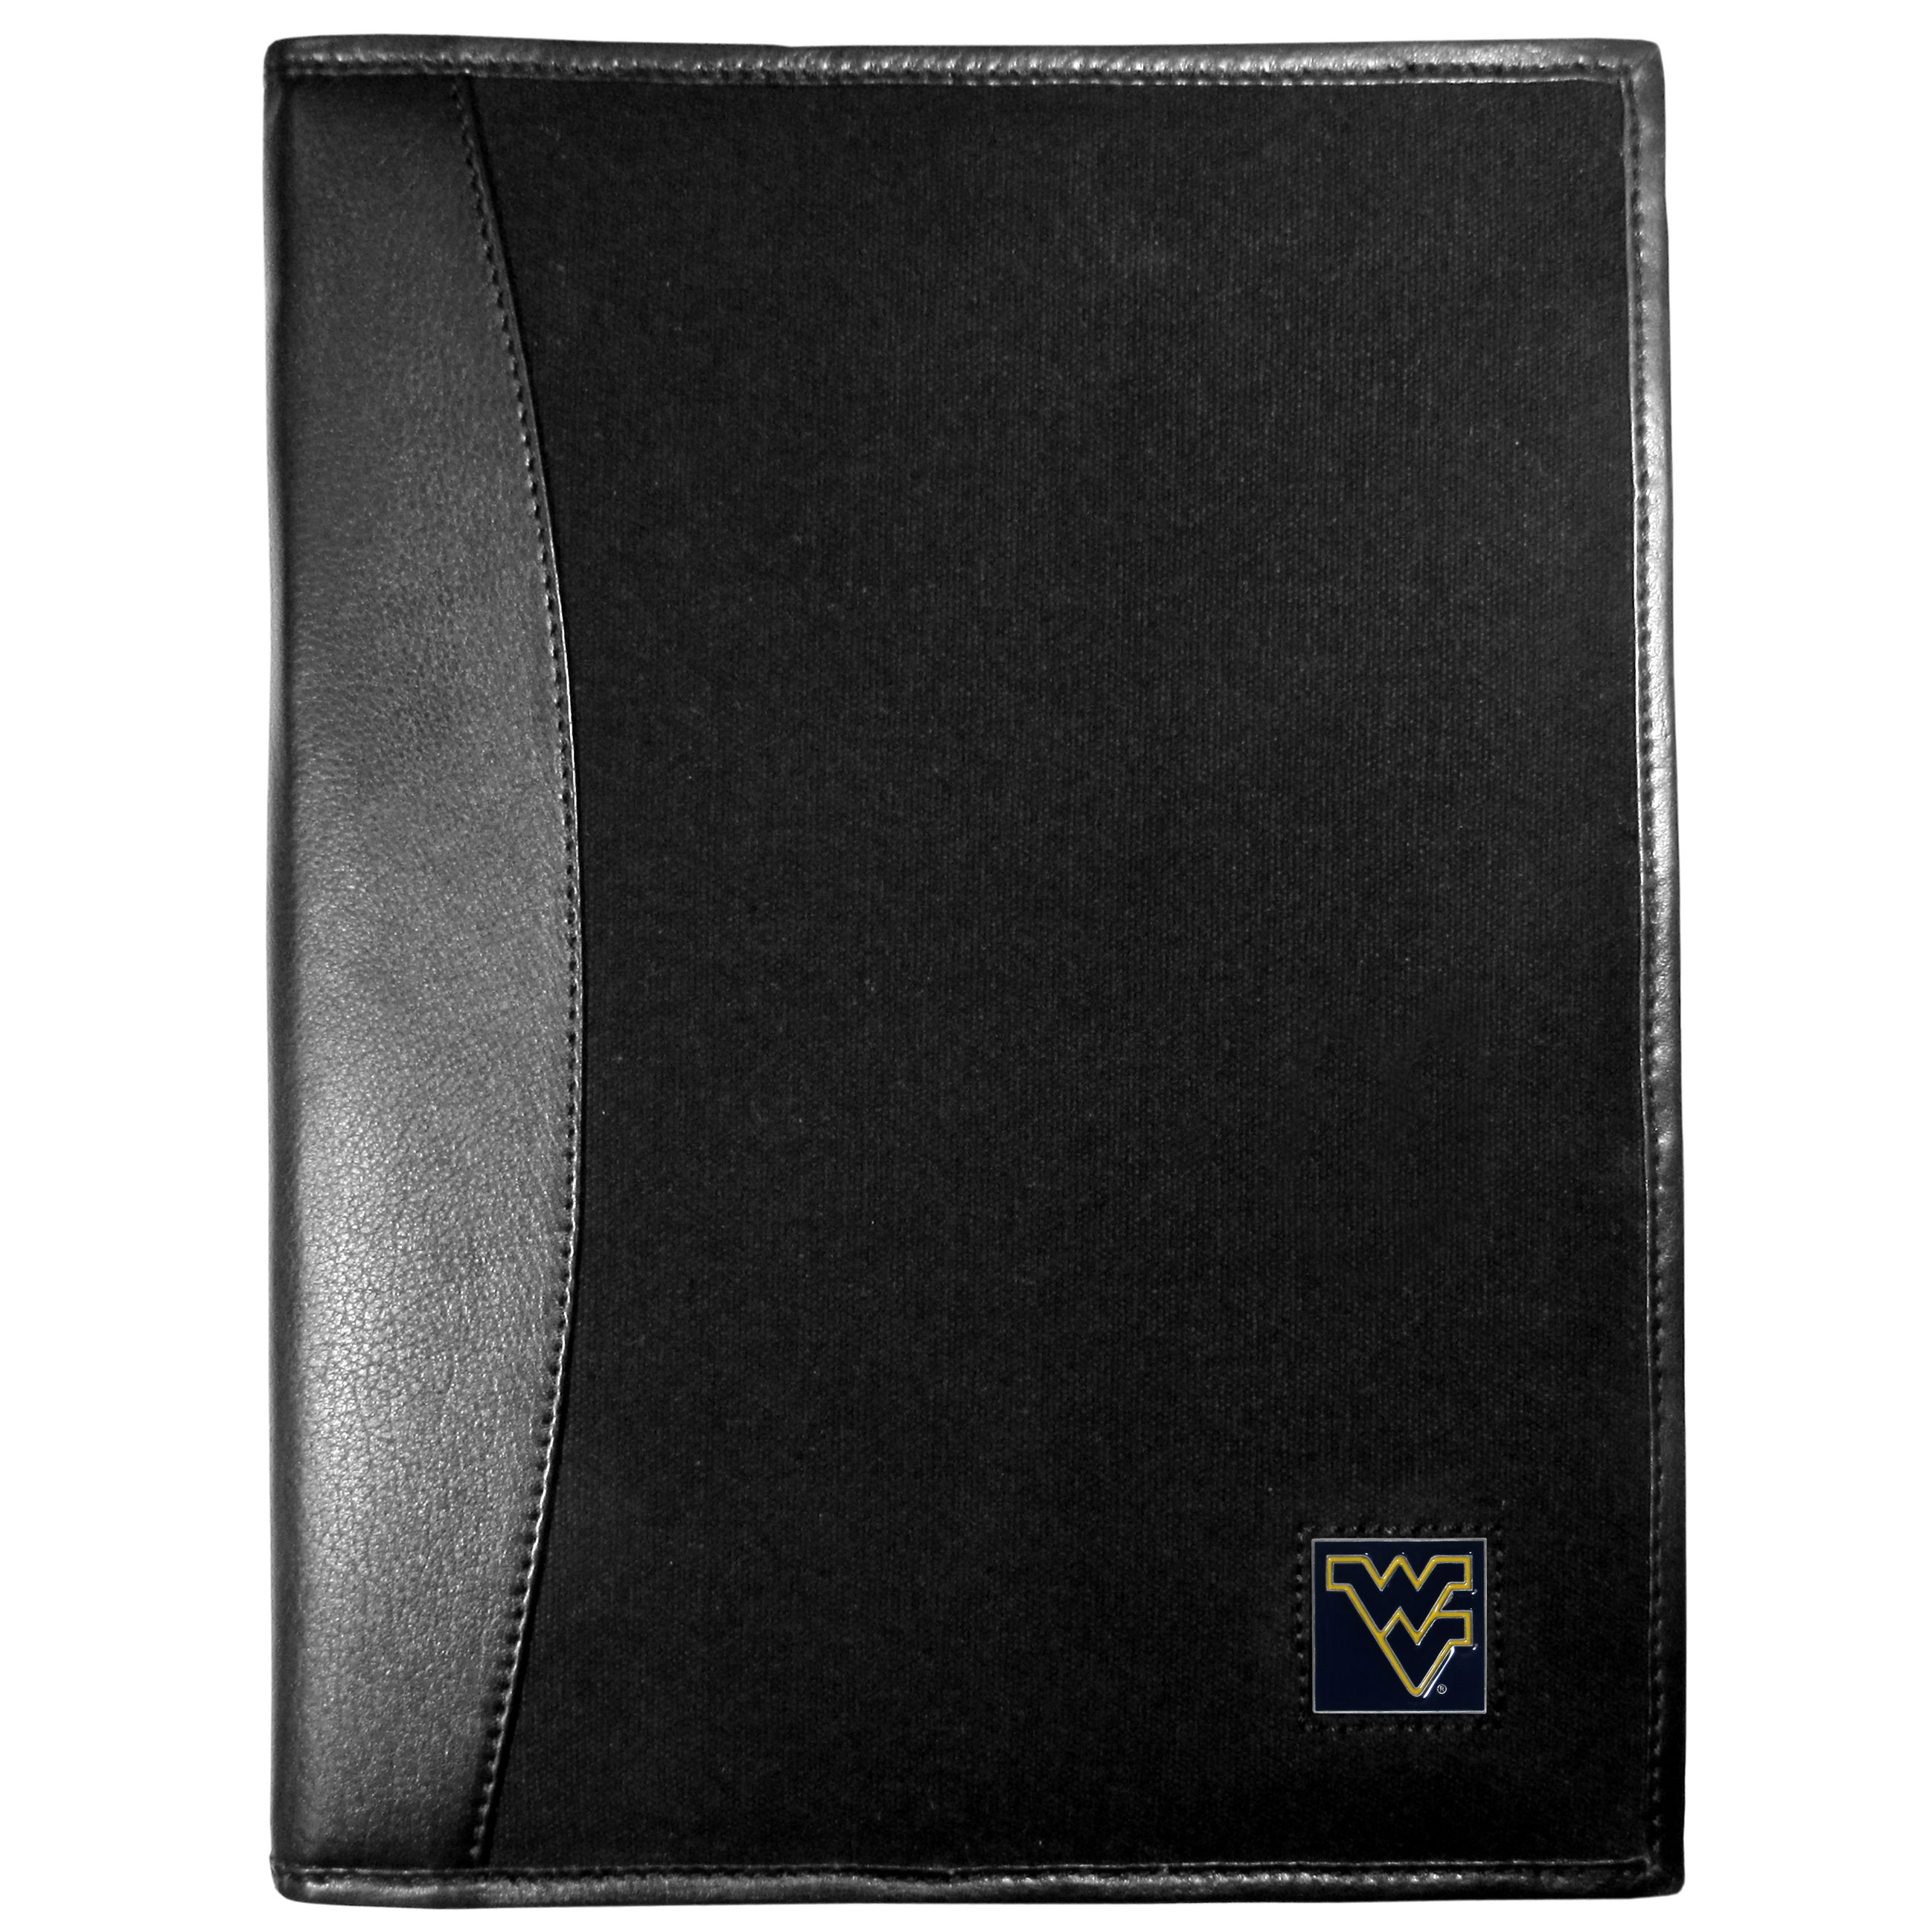 W. Virginia Mountaineers Leather and Canvas Padfolio - Our leather and canvas padfolio perfectly blends form and function. The attractive portfolio is bound in fine grain leather with an attractive canvas finish and the interior is a soft nylon. This high quality business accessory also features a fully cast metal W. Virginia Mountaineers emblem that is subtly set in the corner of the organizer. It is packed with features like 6 card slots for badges, business cards, hotel keys or credit cards and ID with a large pocket for loose papers and a writing tablet slot making it a must-have for the professional on the go.